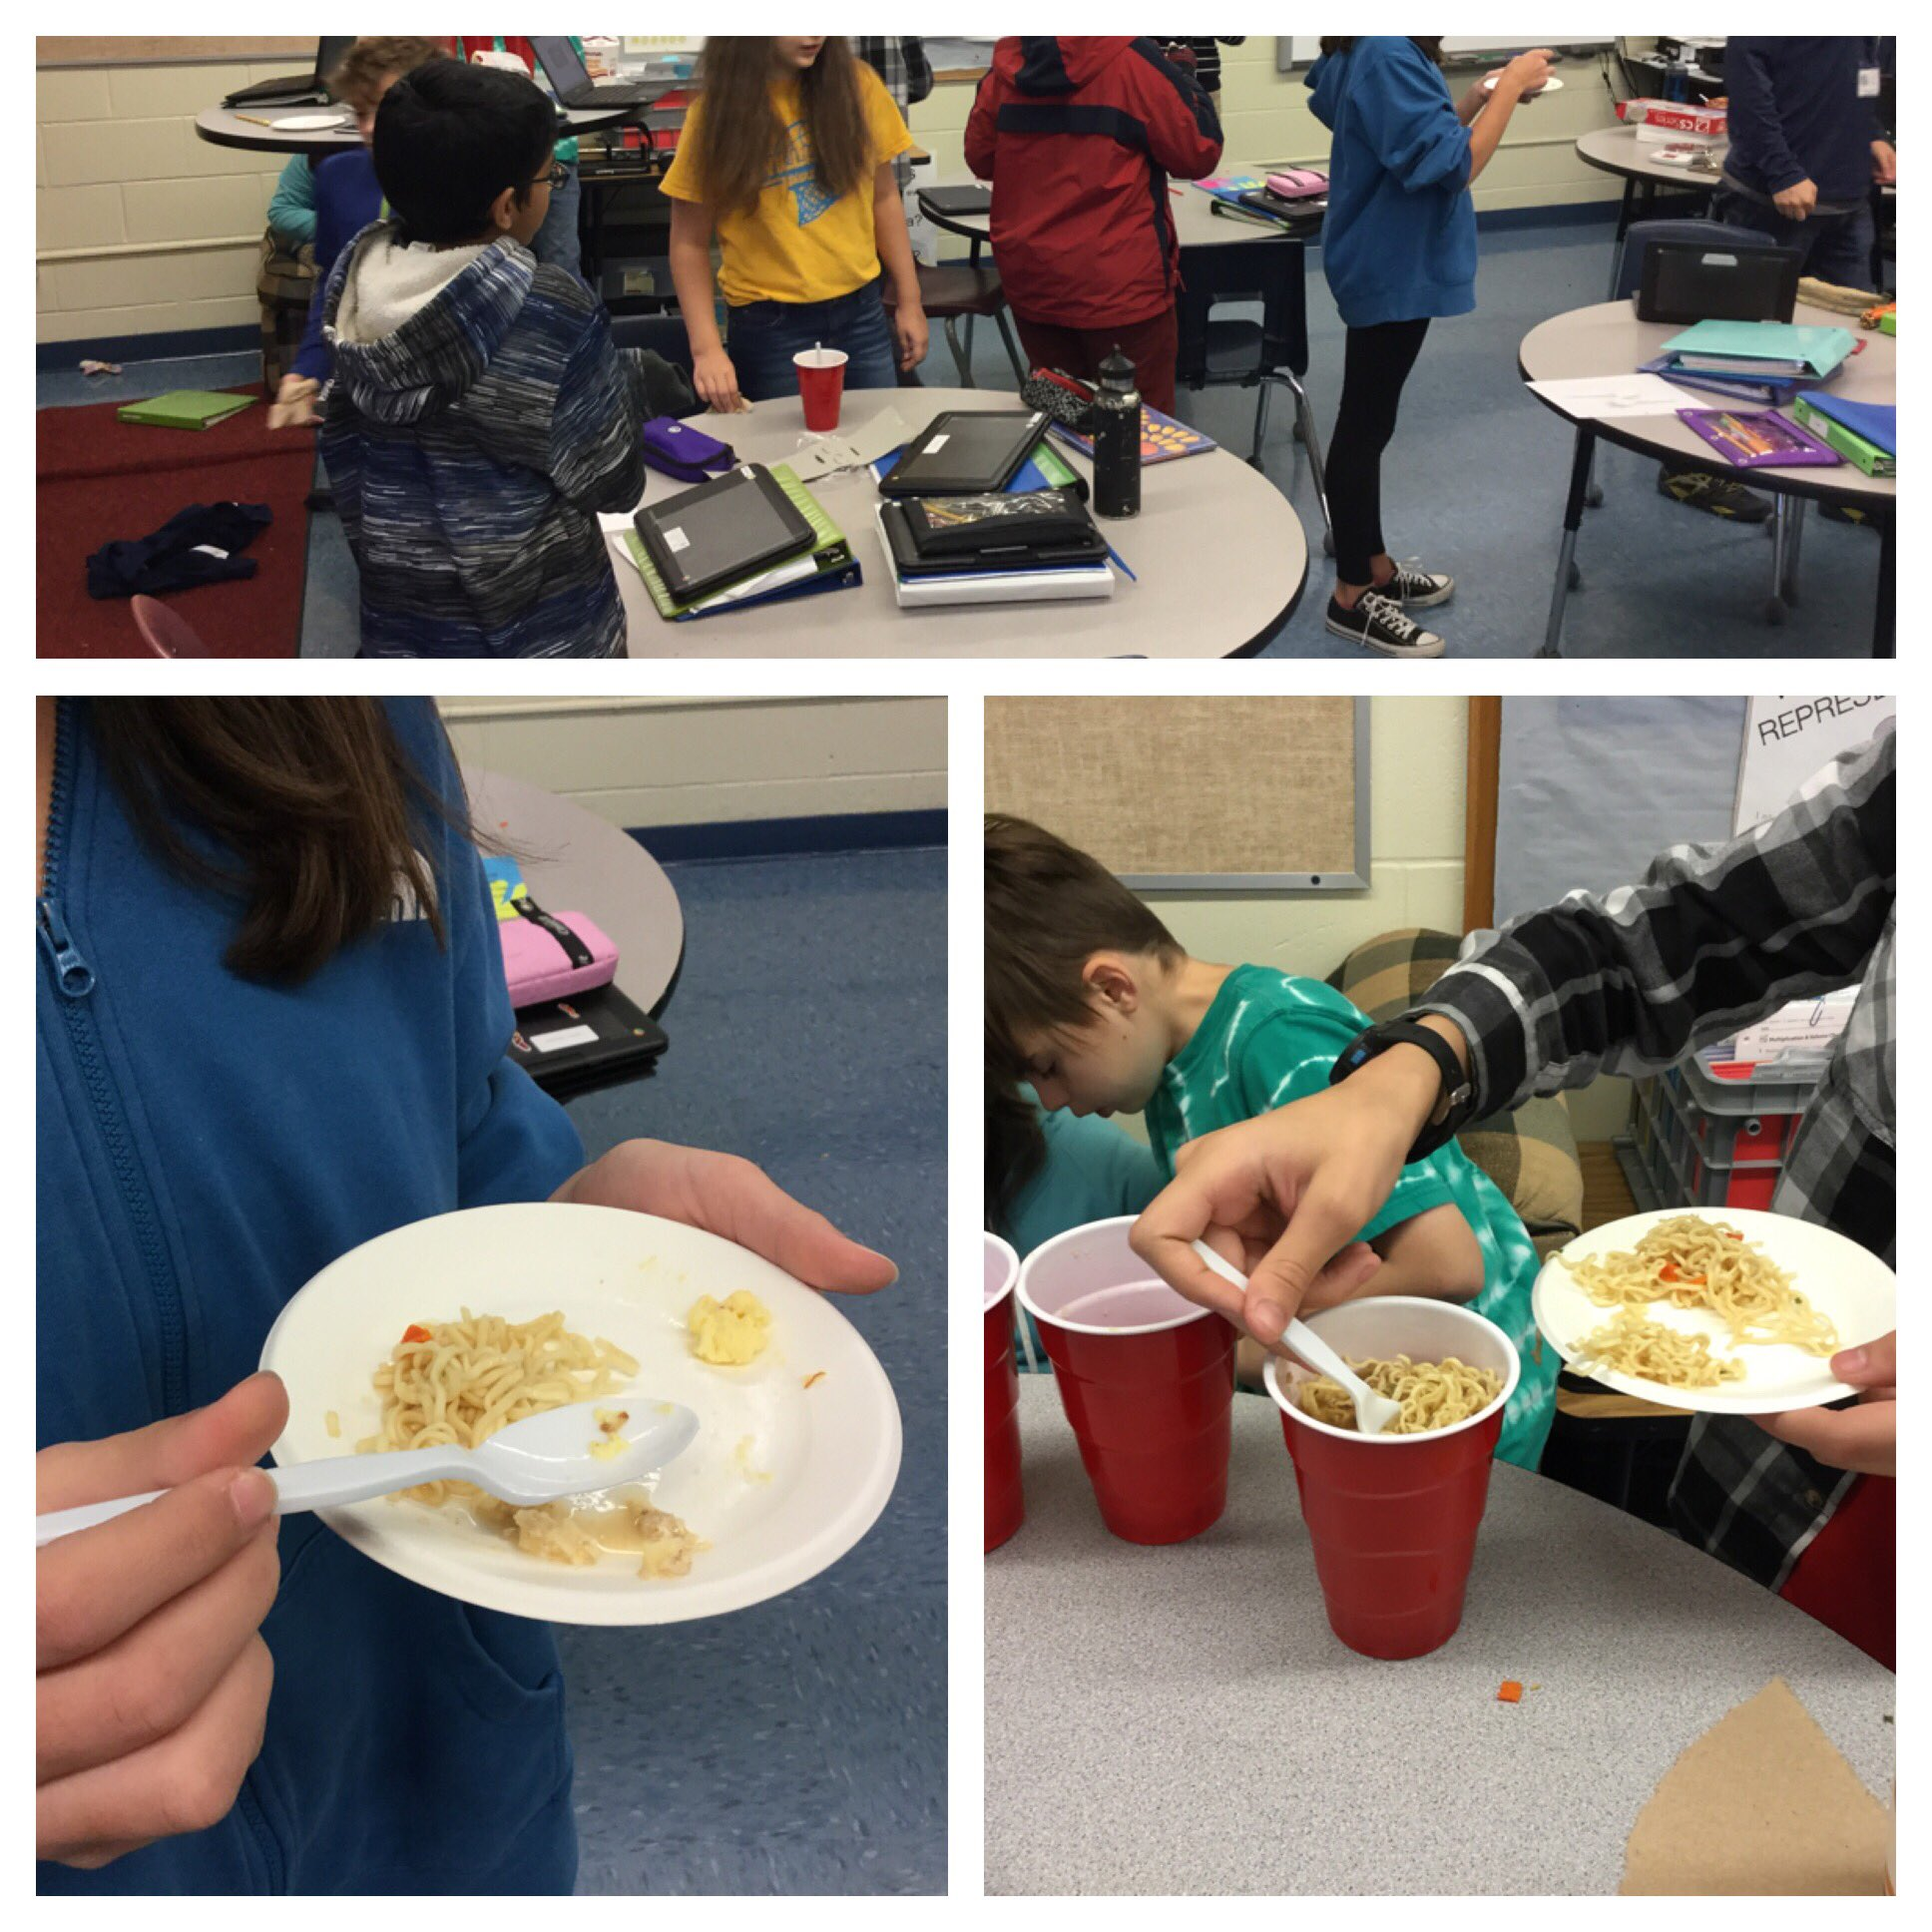 1st period 6th grade math sampling the food they rehydrated and calculated percent change for. #yum #wsdvt #vted https://t.co/Gc64YTFzRN